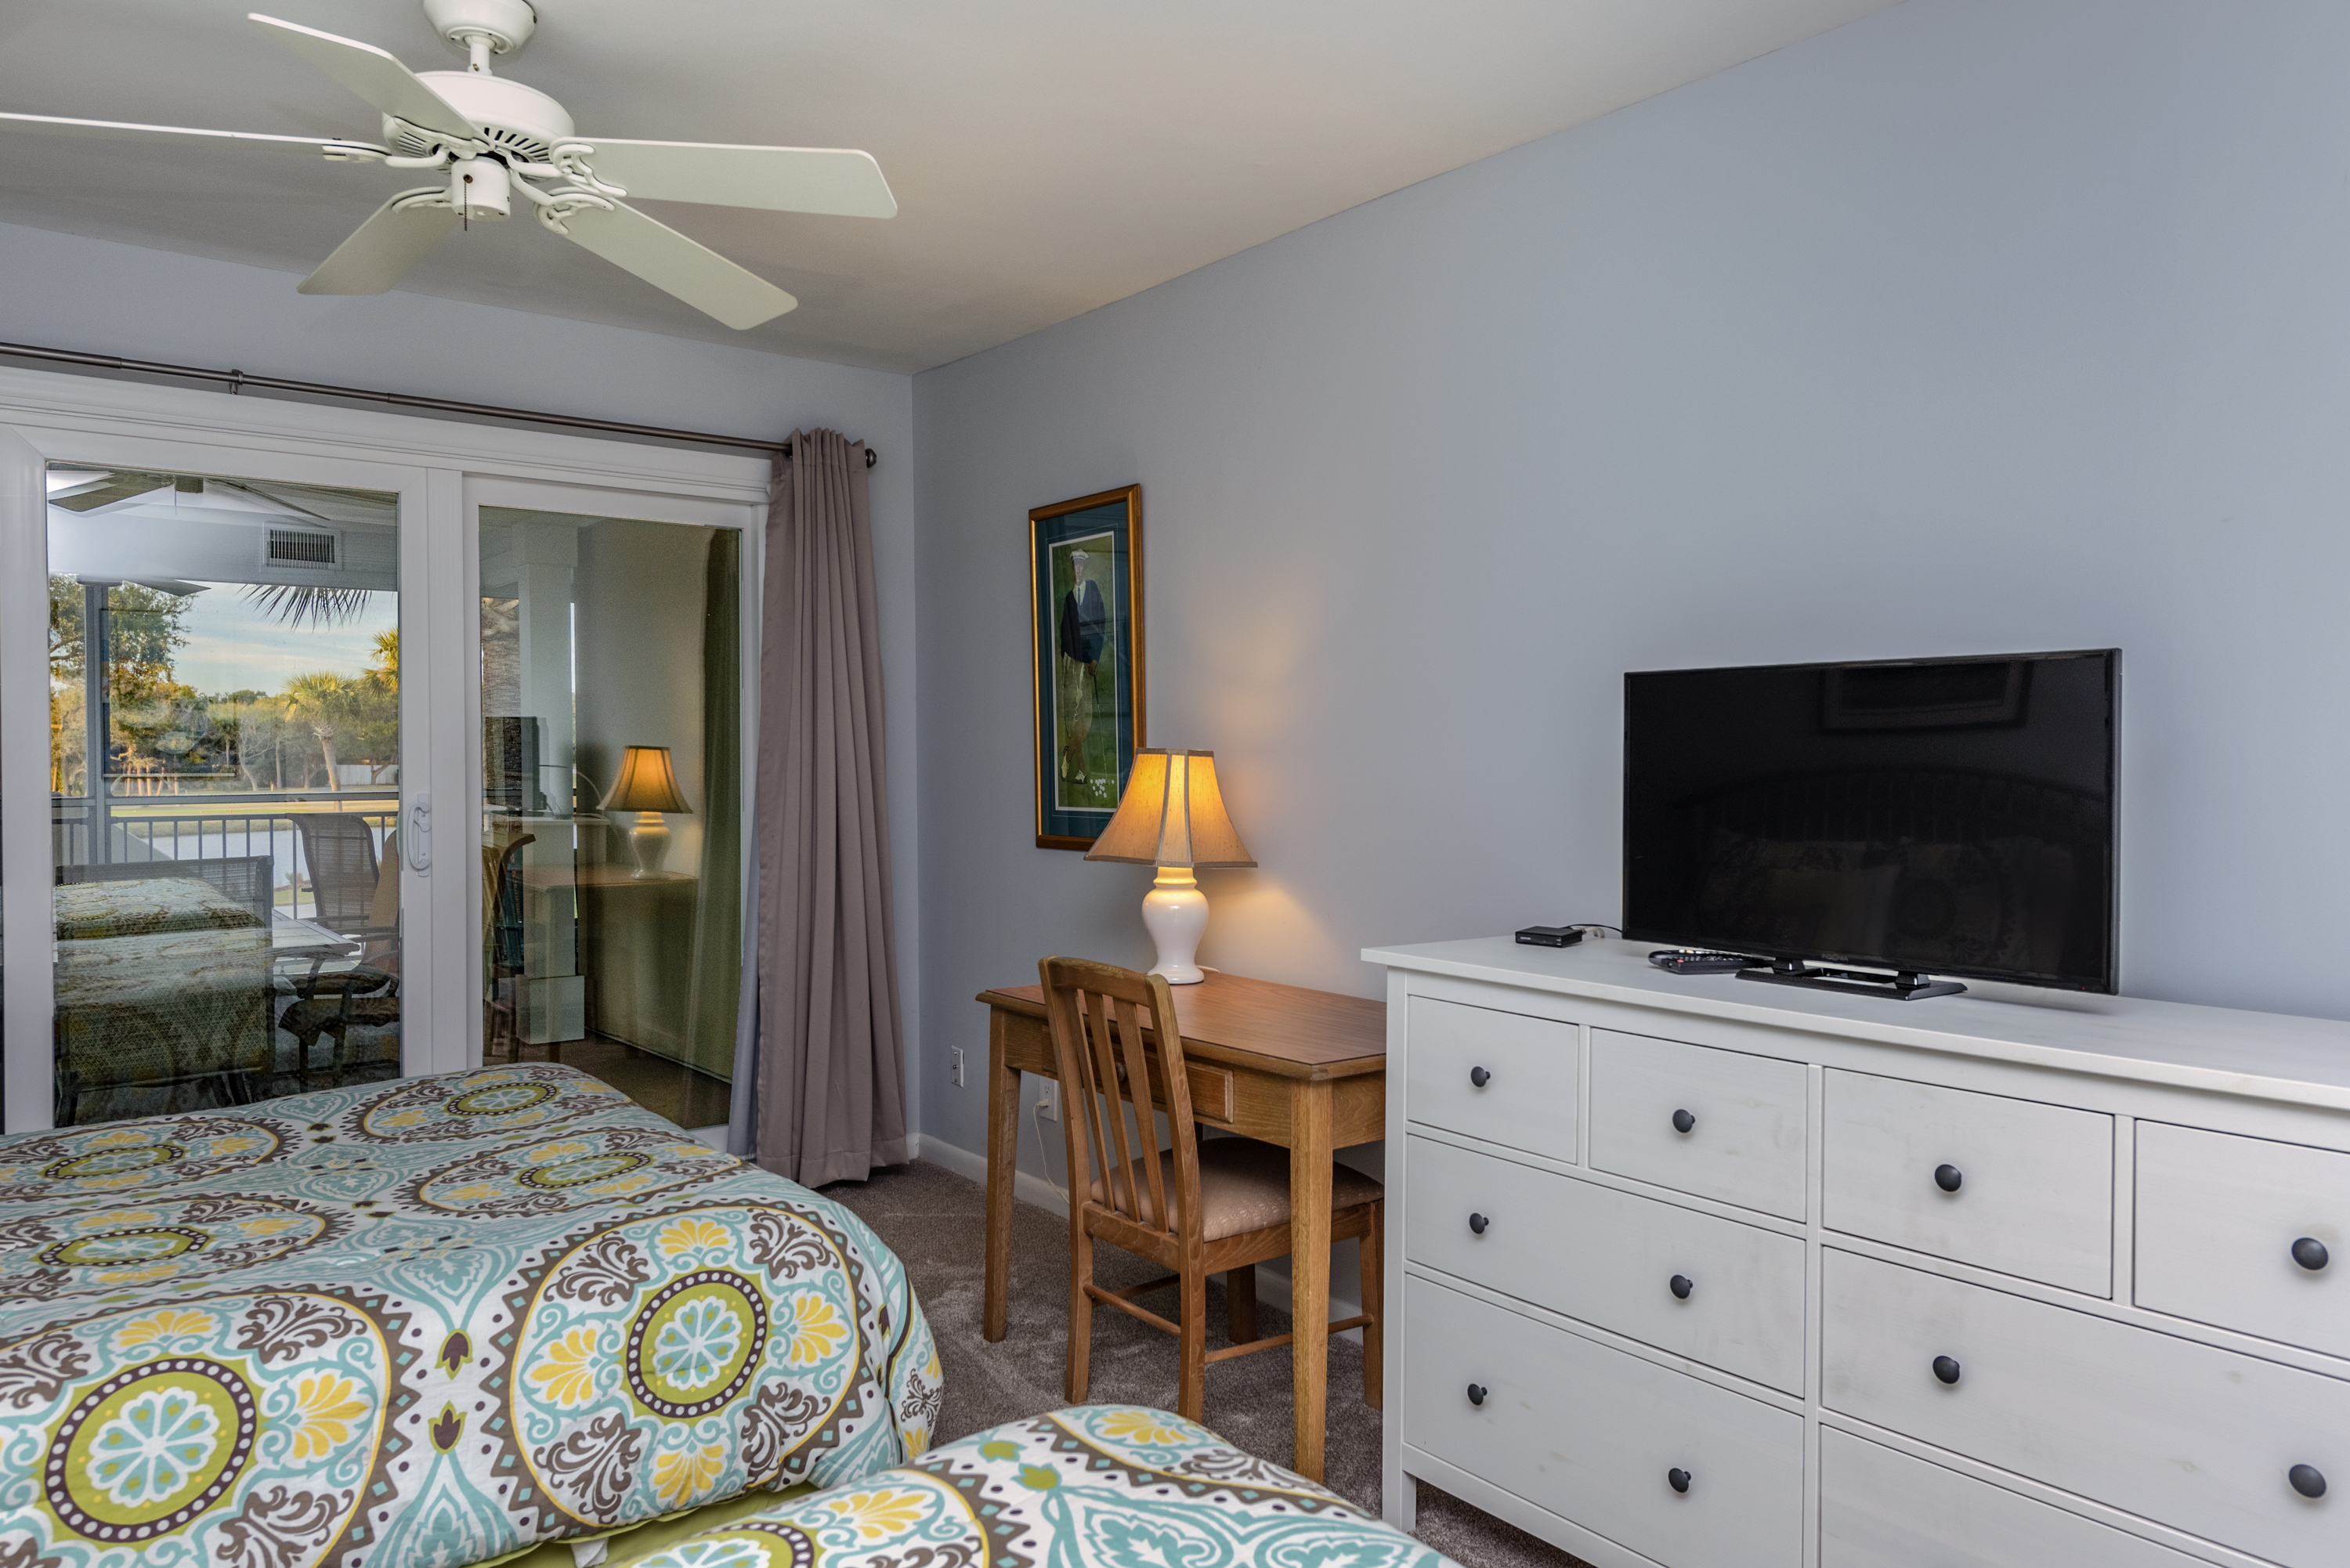 The second bedroom also has two queen beds. There is a desk for your computer and an HDTV too.